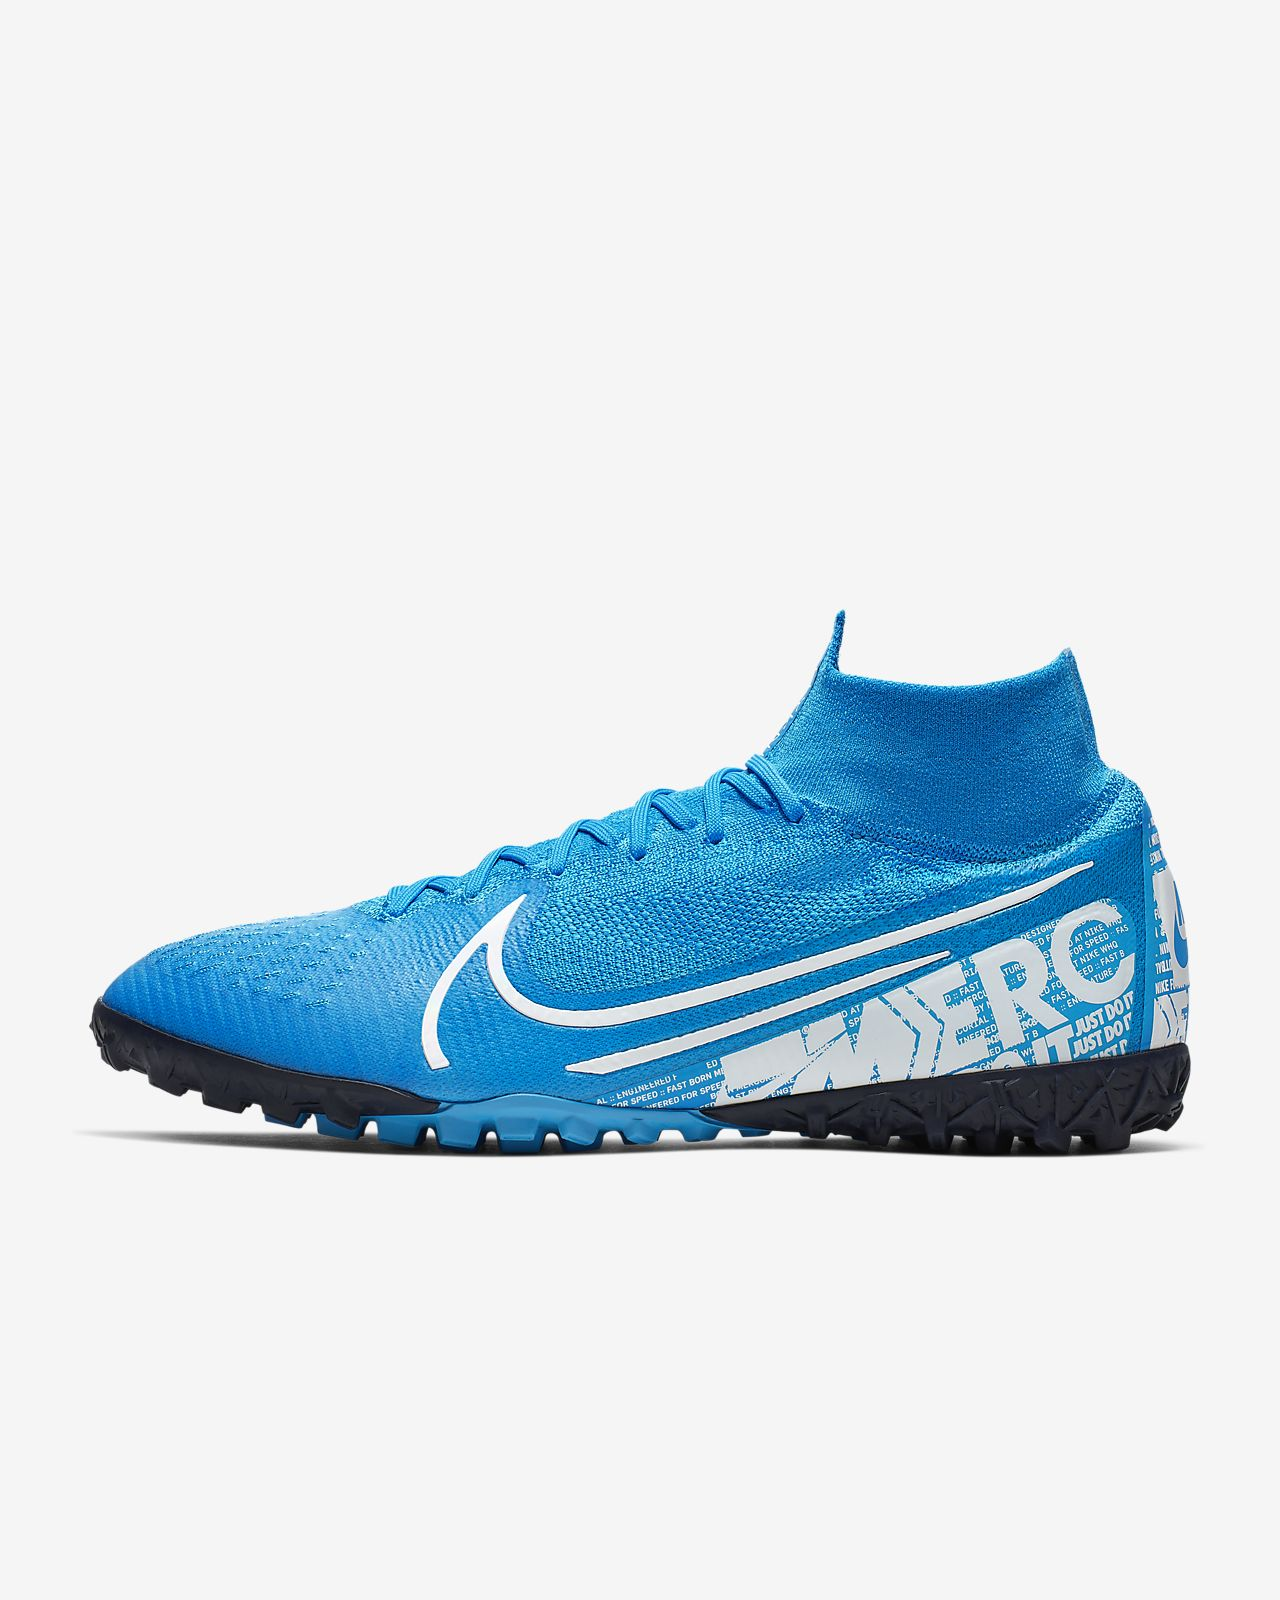 info for f926c cd4f7 Nike Mercurial Superfly 7 Elite TF Artificial-Turf Soccer Shoe